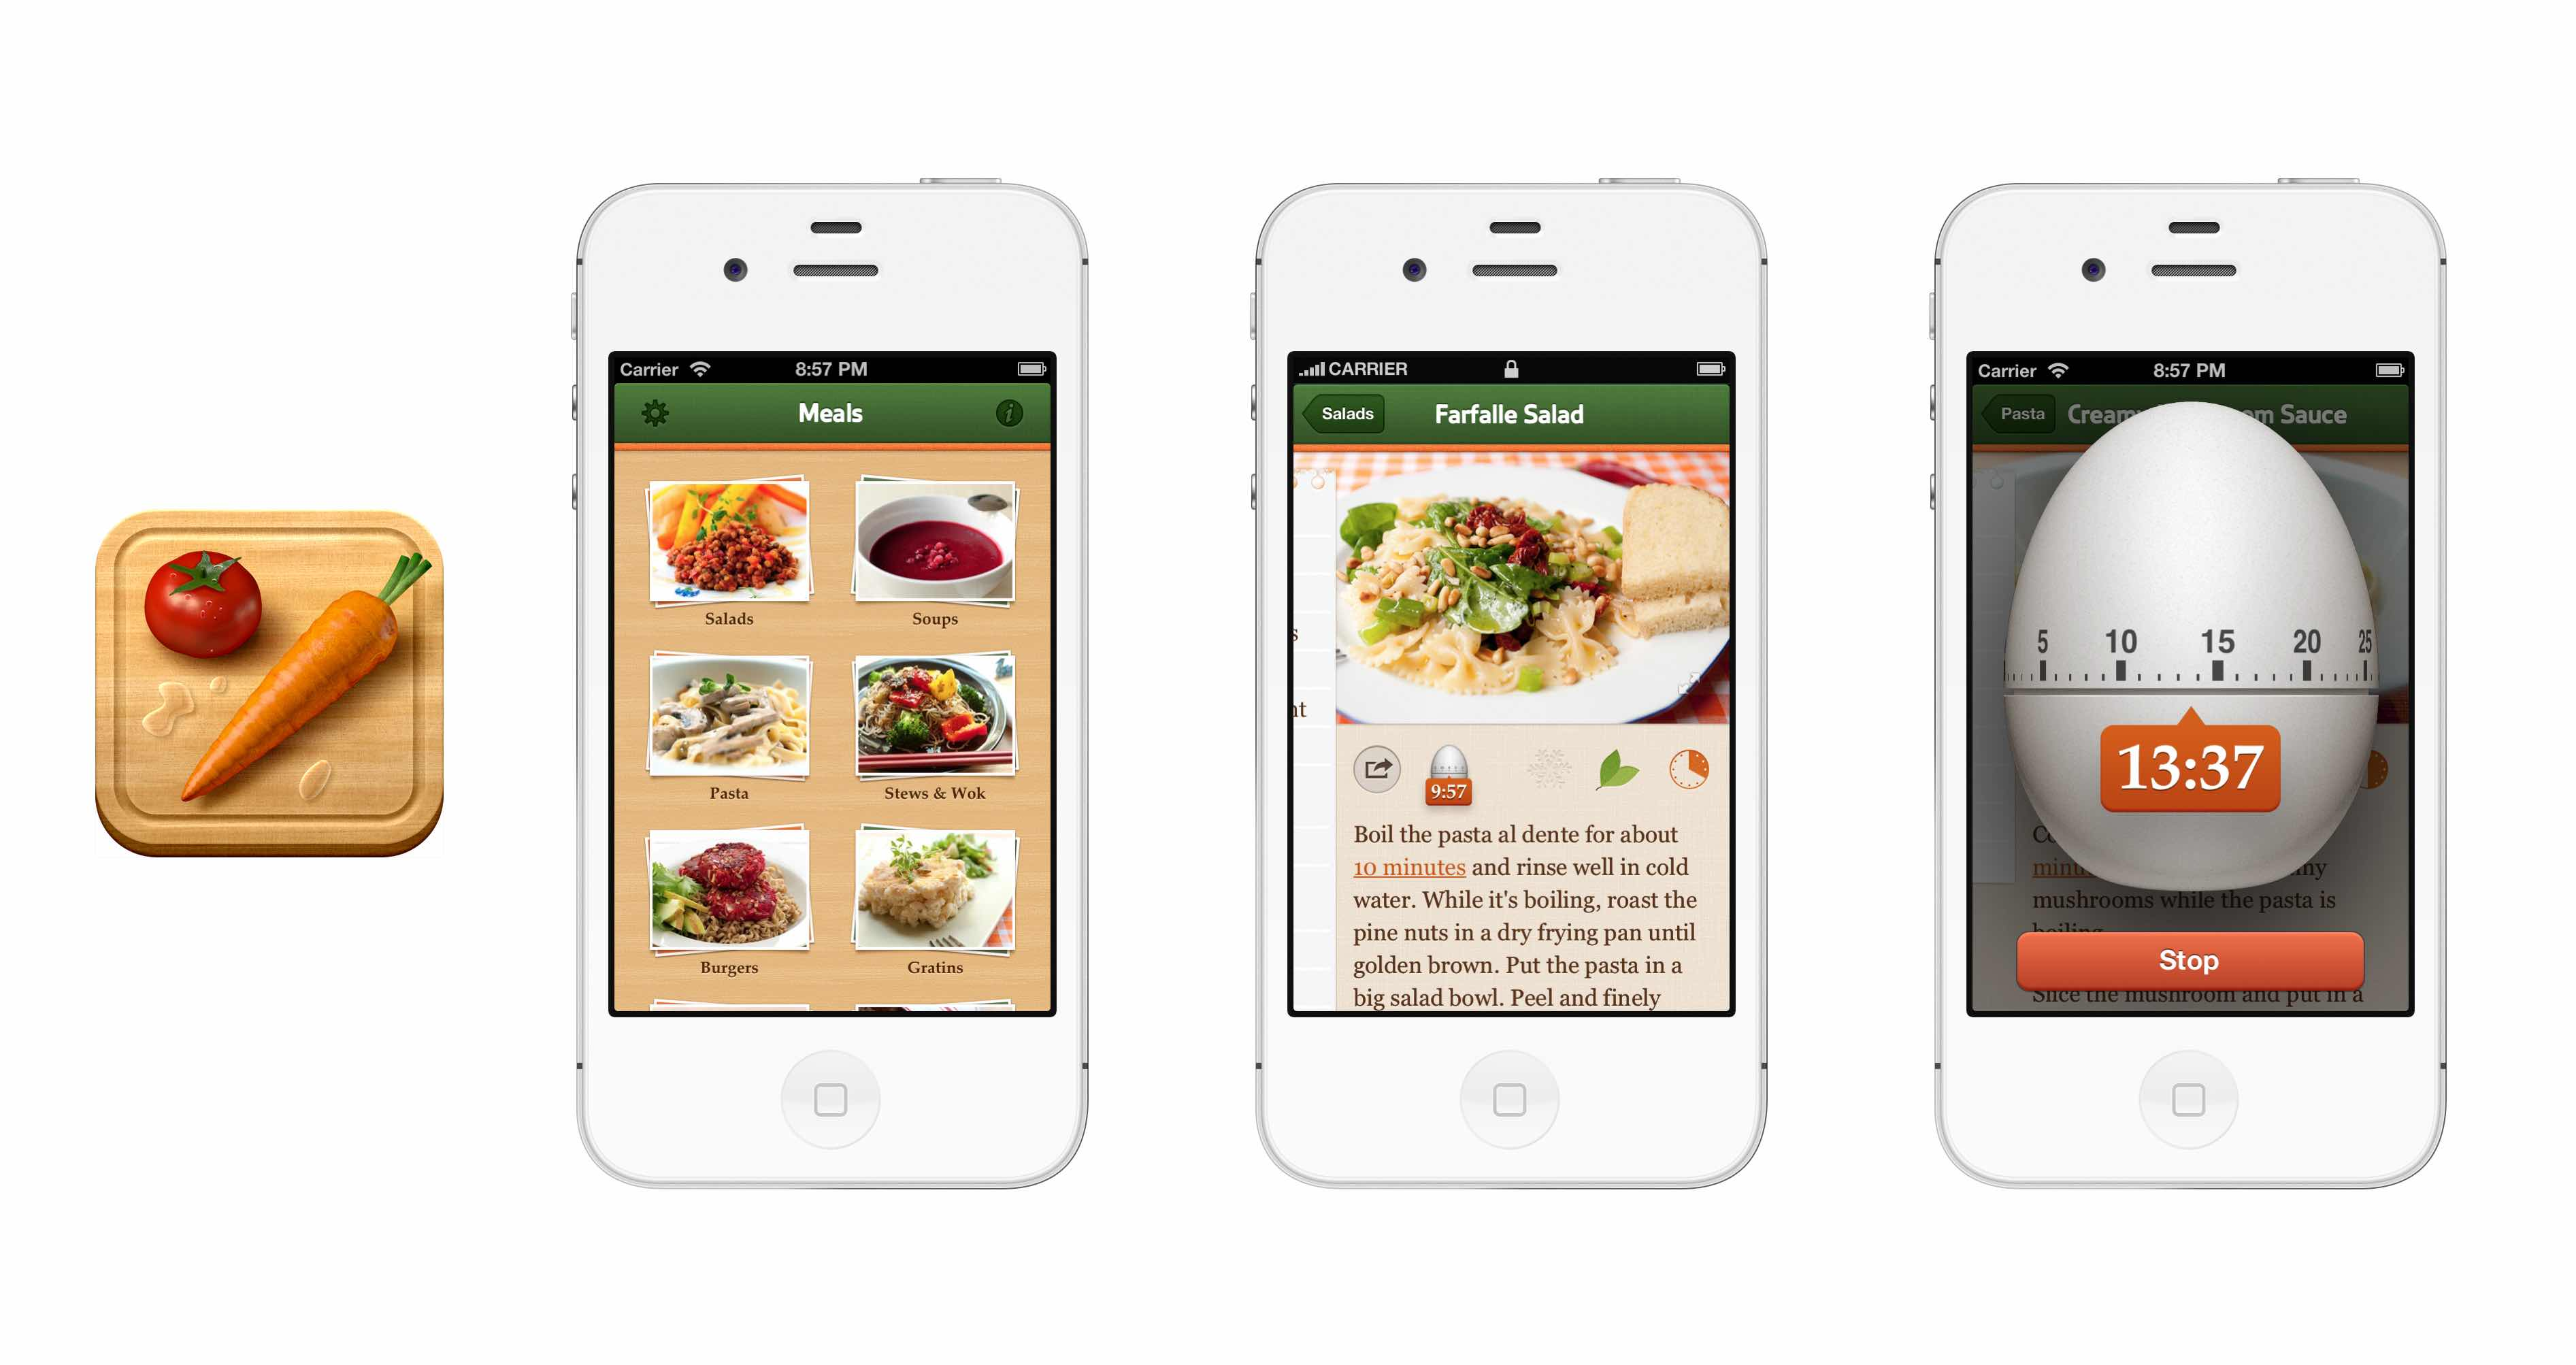 Max rudberg visual user interface designer veggie meals iphone 4 and ios 5 forumfinder Images